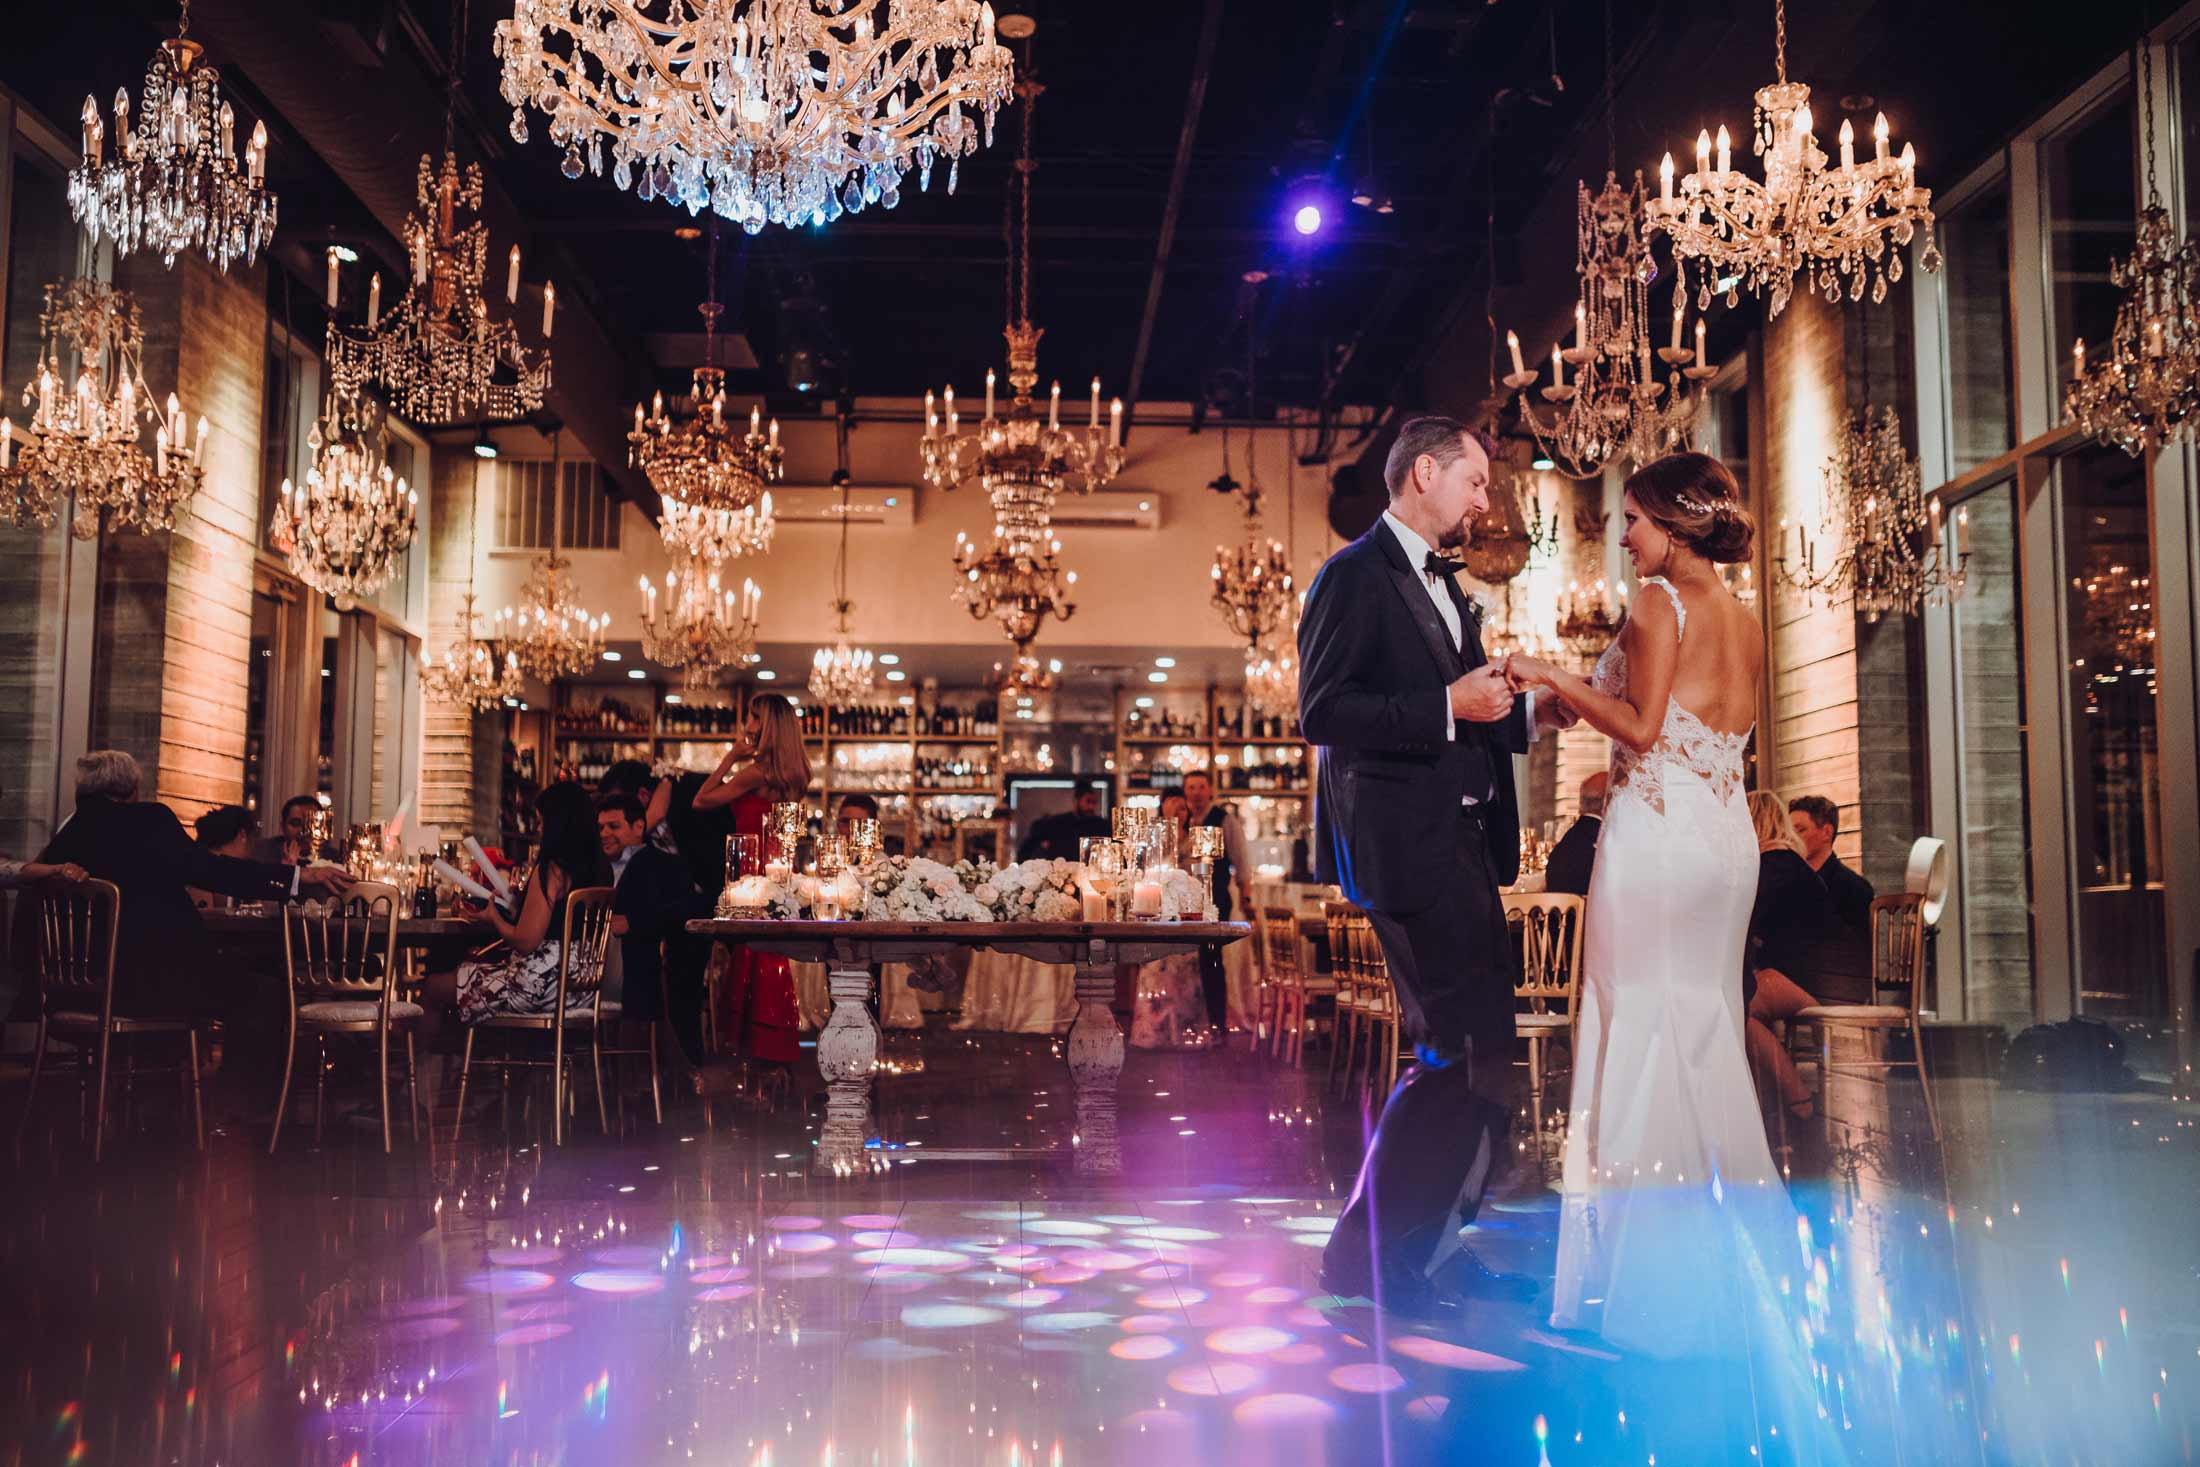 Bride and Groom having their first dance at their Wedding at the Dunlavy in Houston, TX.